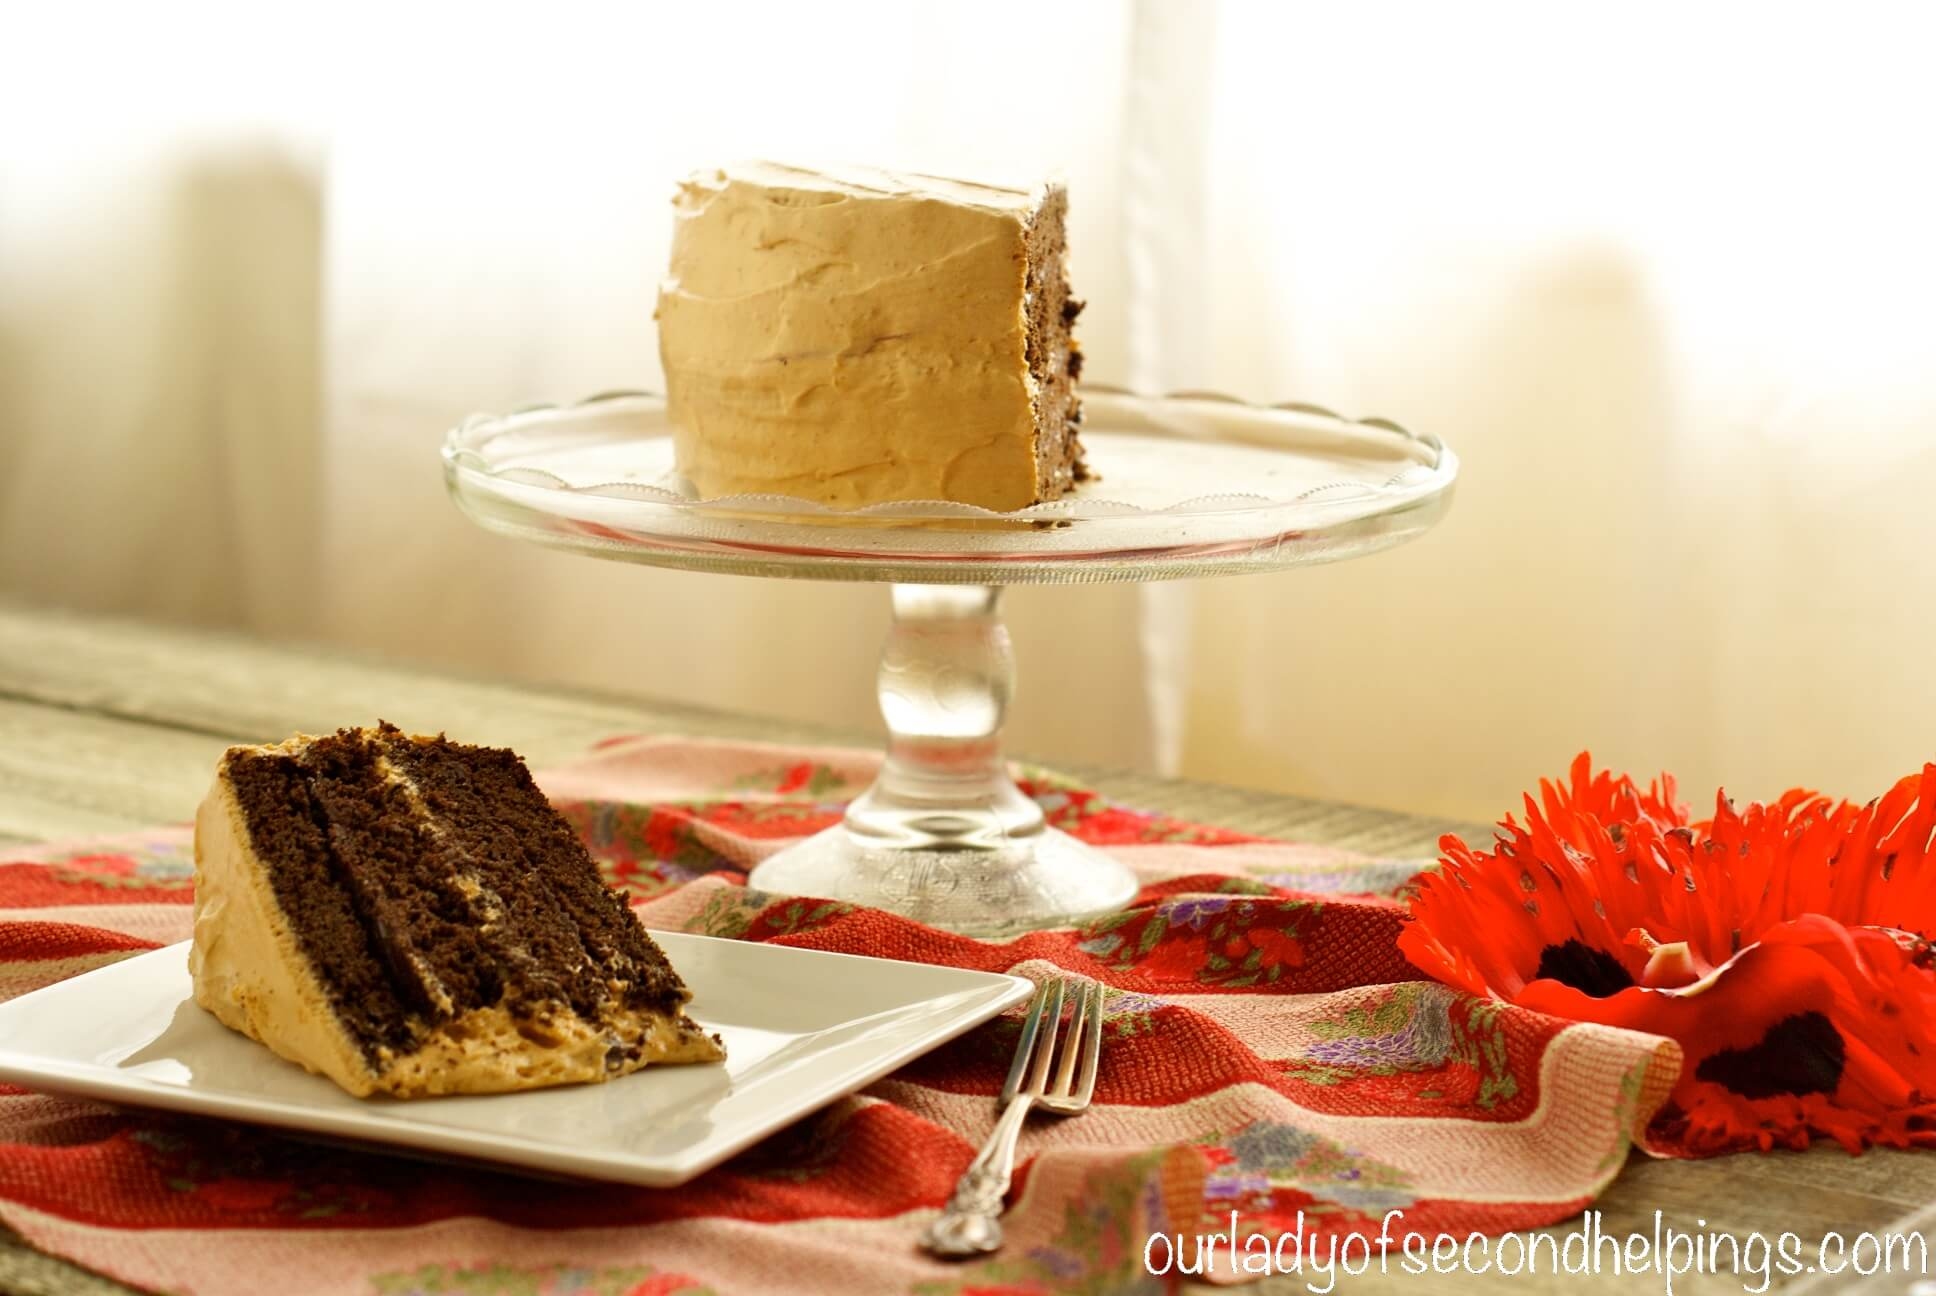 Low calorie chocolate cake with light frosting